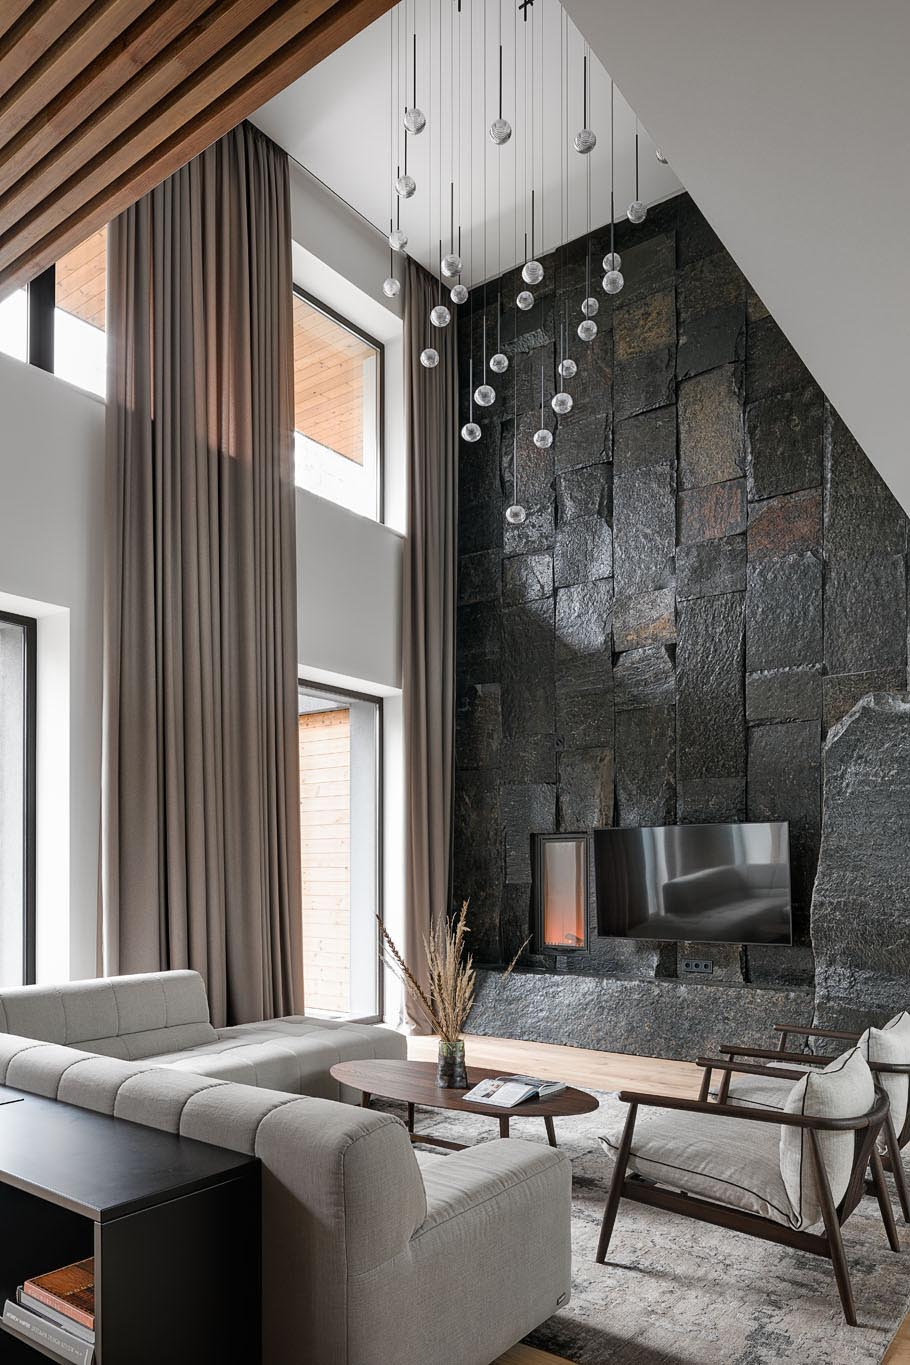 In this modern living room, there's a double height ceiling with a sculptural light installation, and a large, dark, and monumental natural stone boulder wall that's used as a backdrop for the fireplace and television.